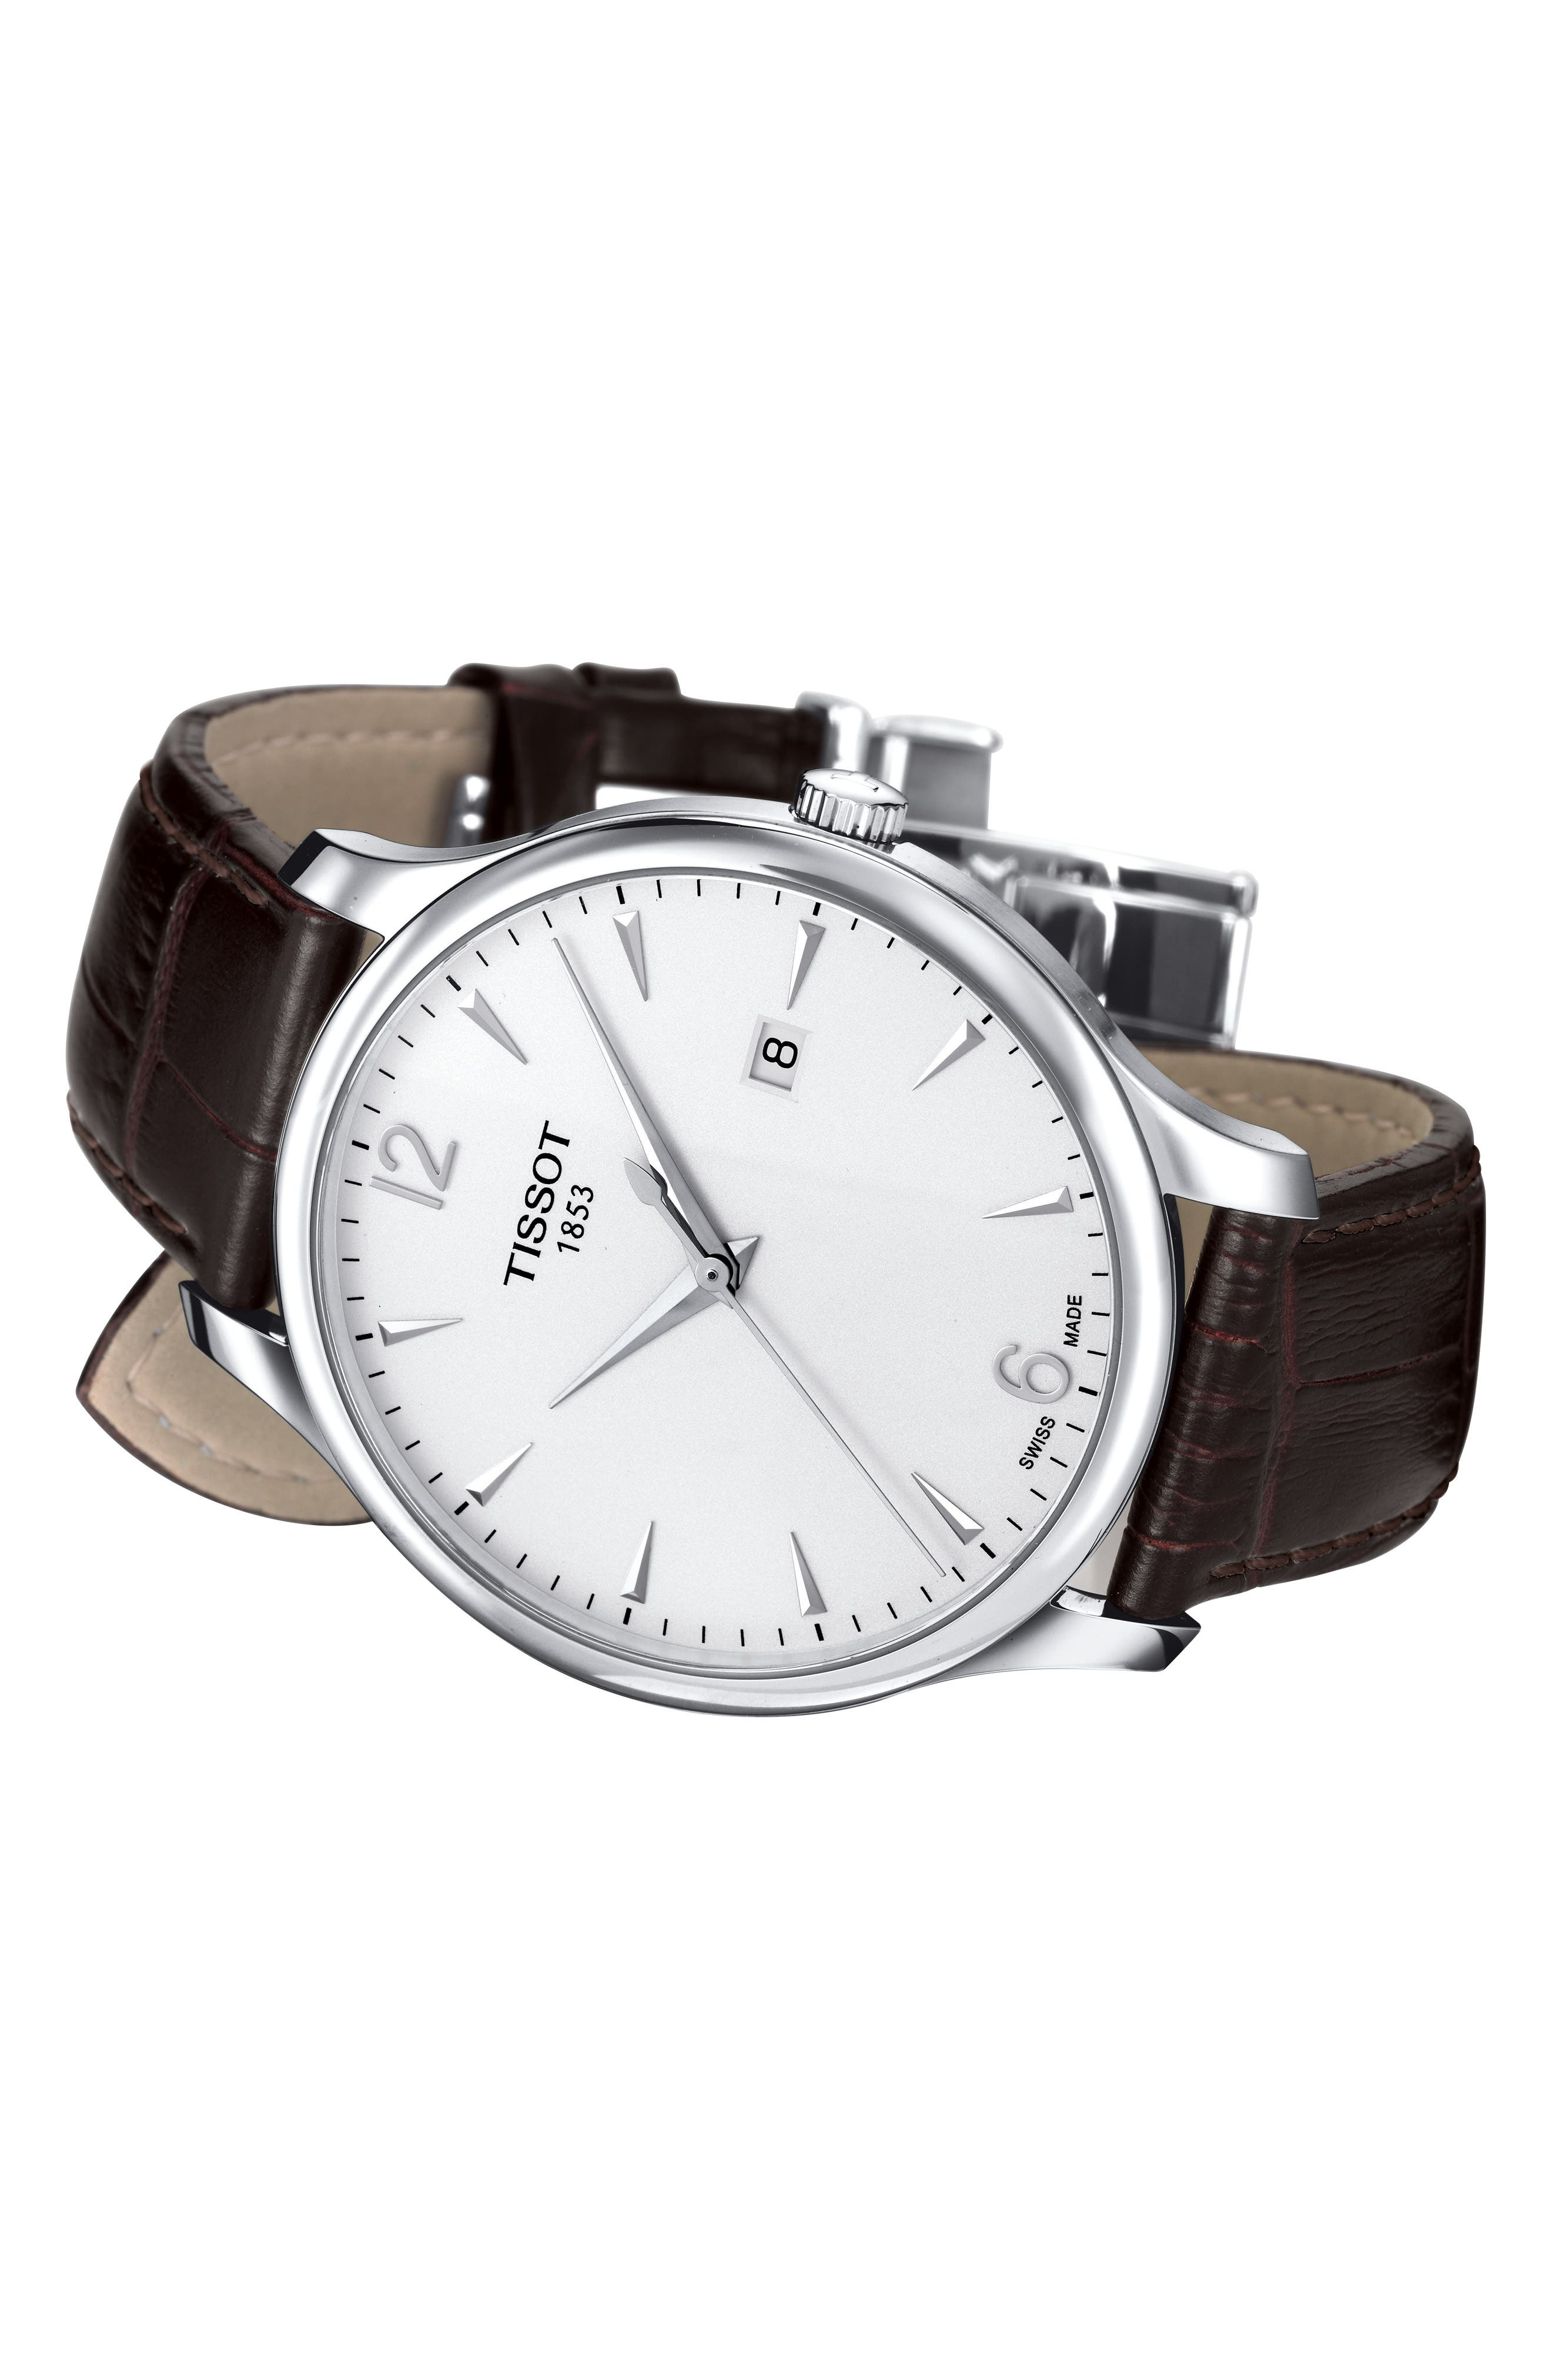 TISSOT, Tradition Leather Strap Watch, 42mm, Alternate thumbnail 4, color, BROWN/ SILVER